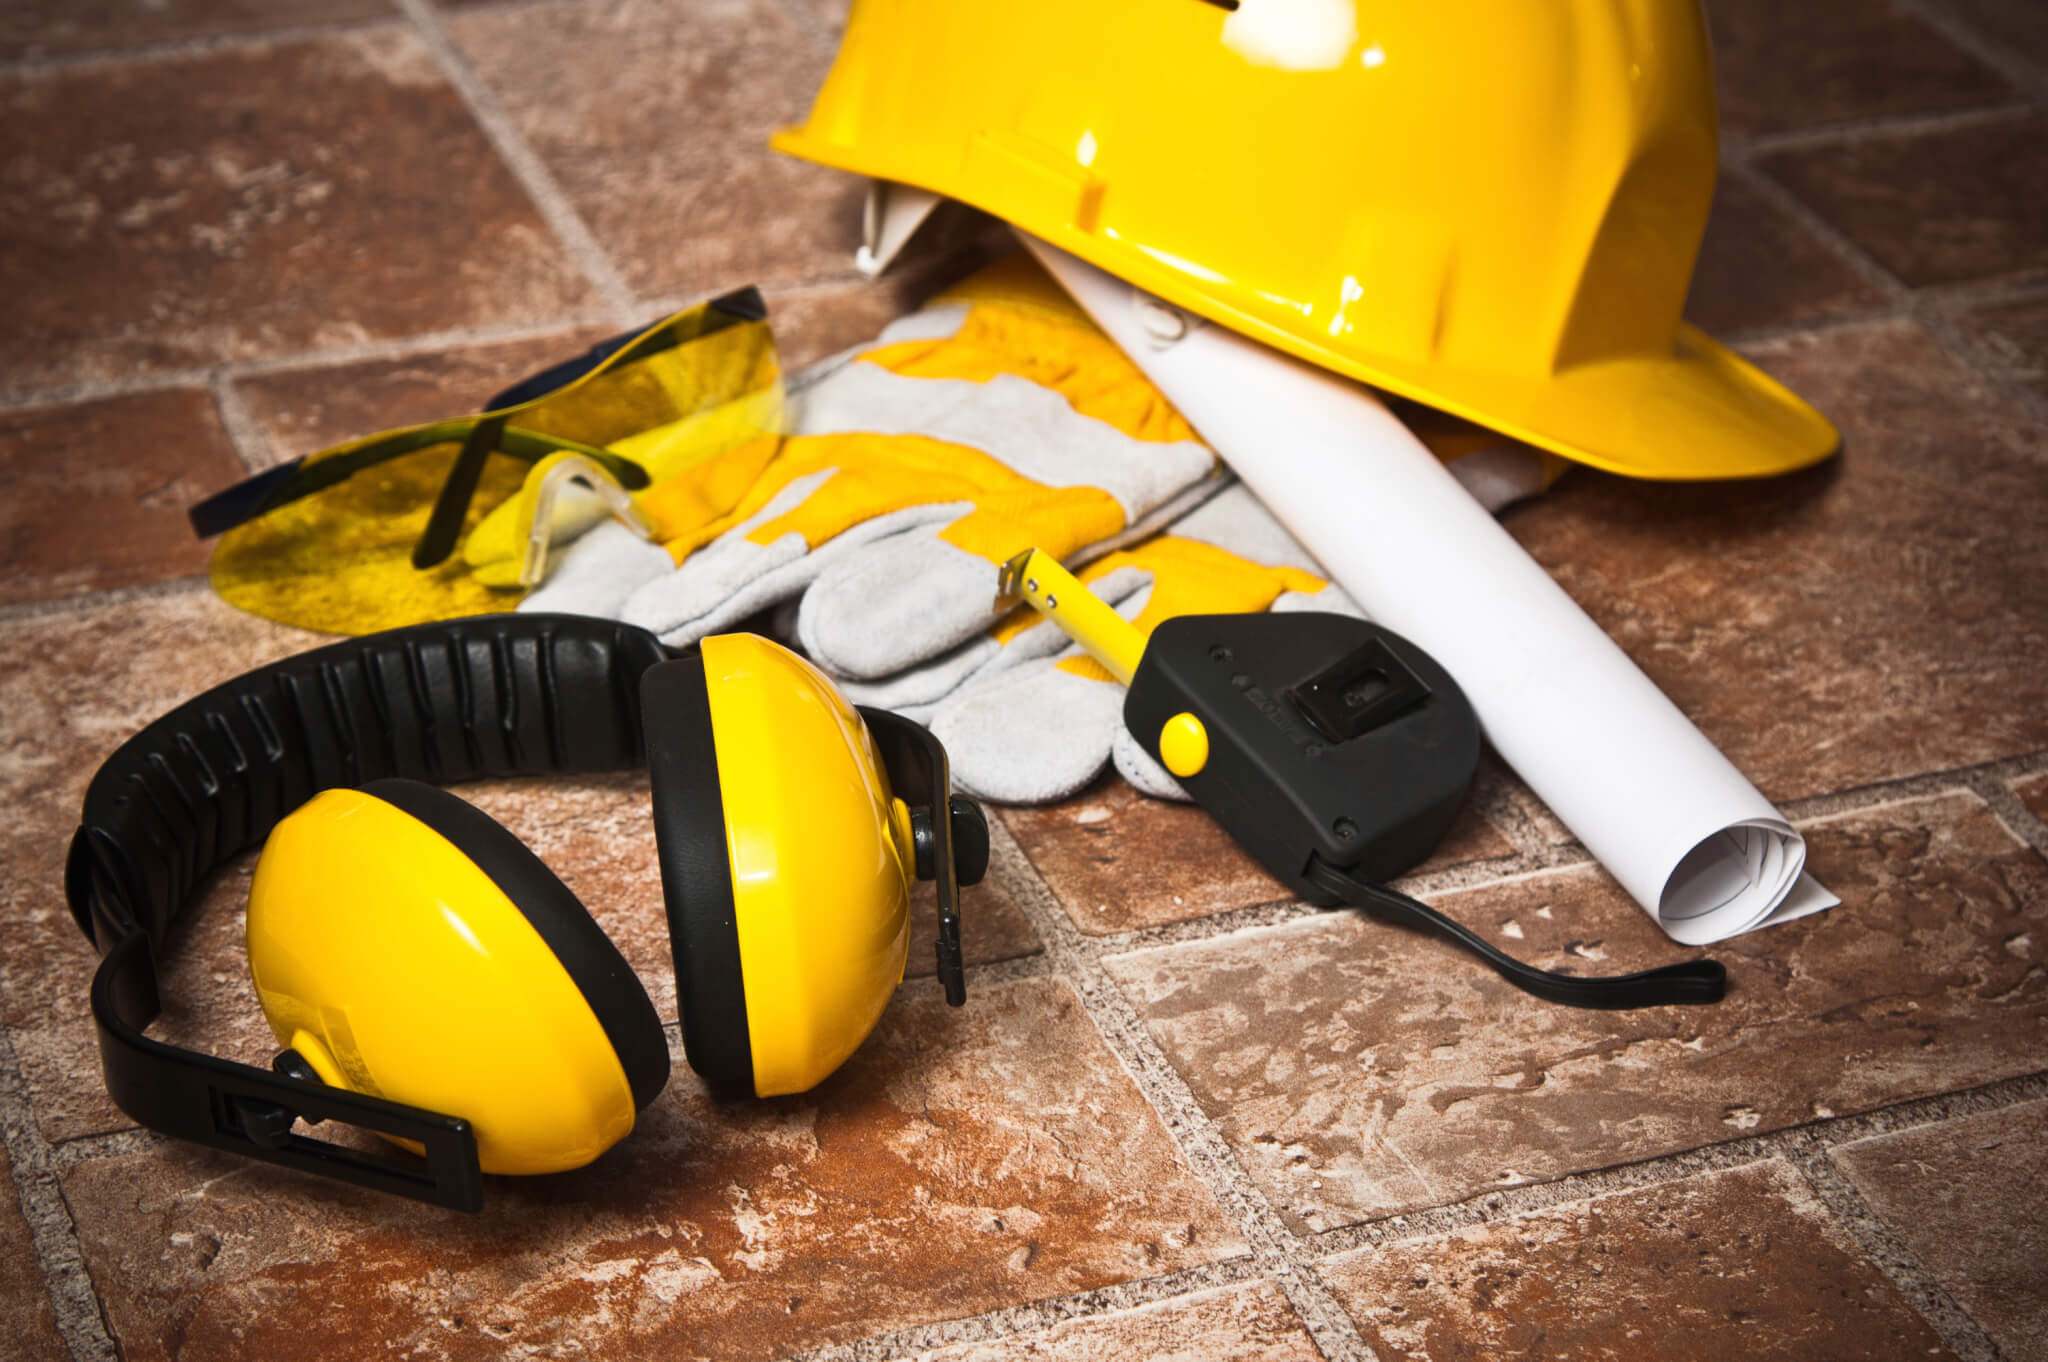 prevent injuries with safety gear